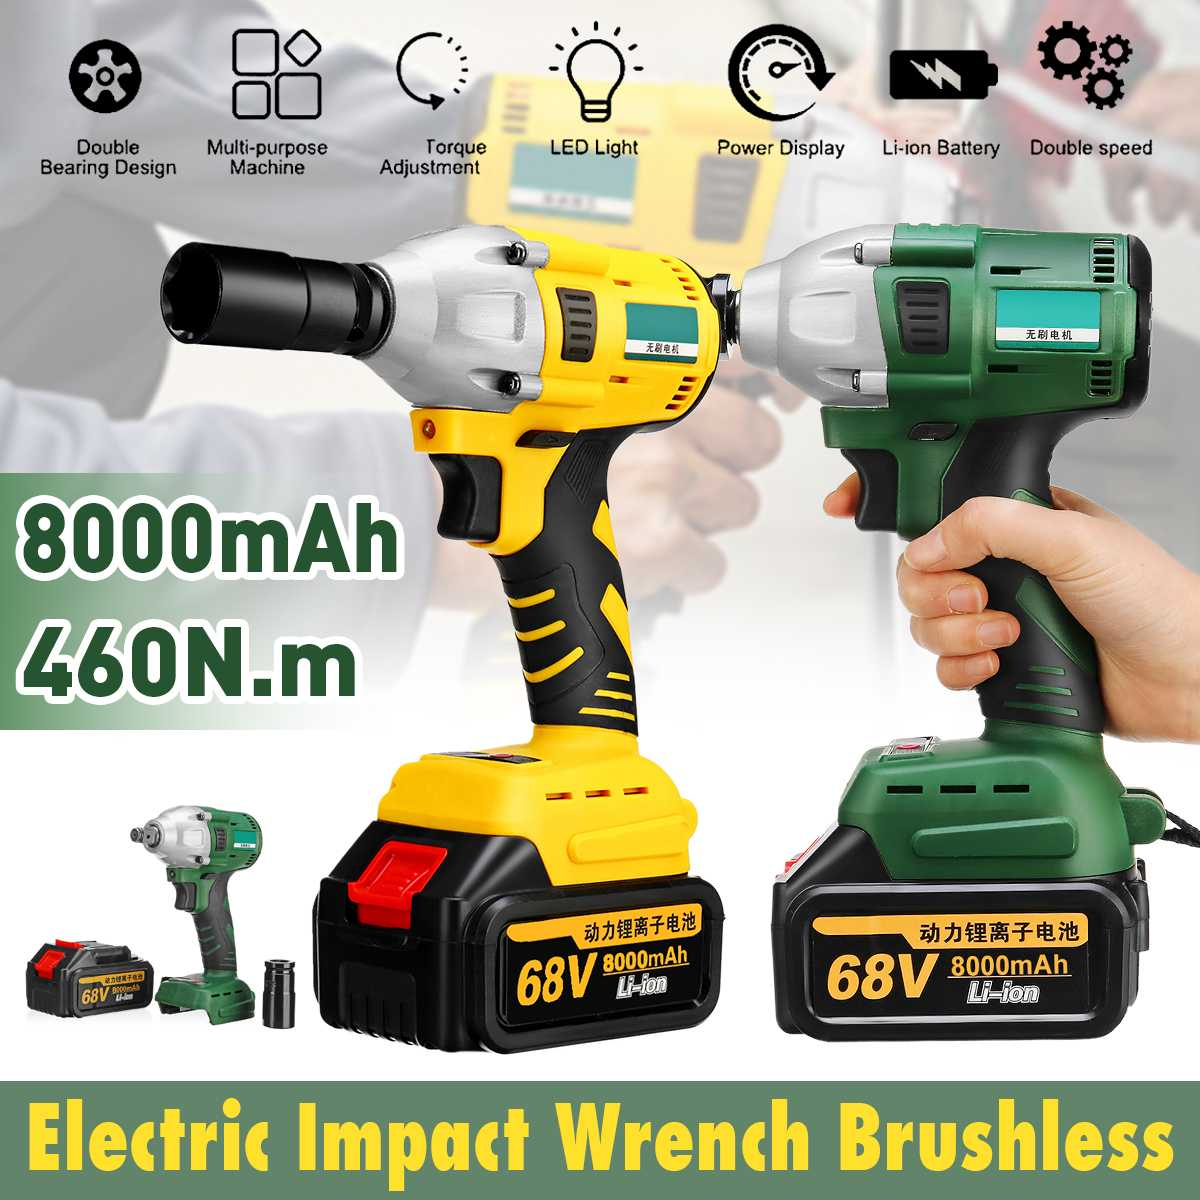 68V Electric Brushless Cordless Impact Wrench 8000mAh 2 Batteries 1 Charger 460N.m High Torque Electric Wrench Power Tools68V Electric Brushless Cordless Impact Wrench 8000mAh 2 Batteries 1 Charger 460N.m High Torque Electric Wrench Power Tools